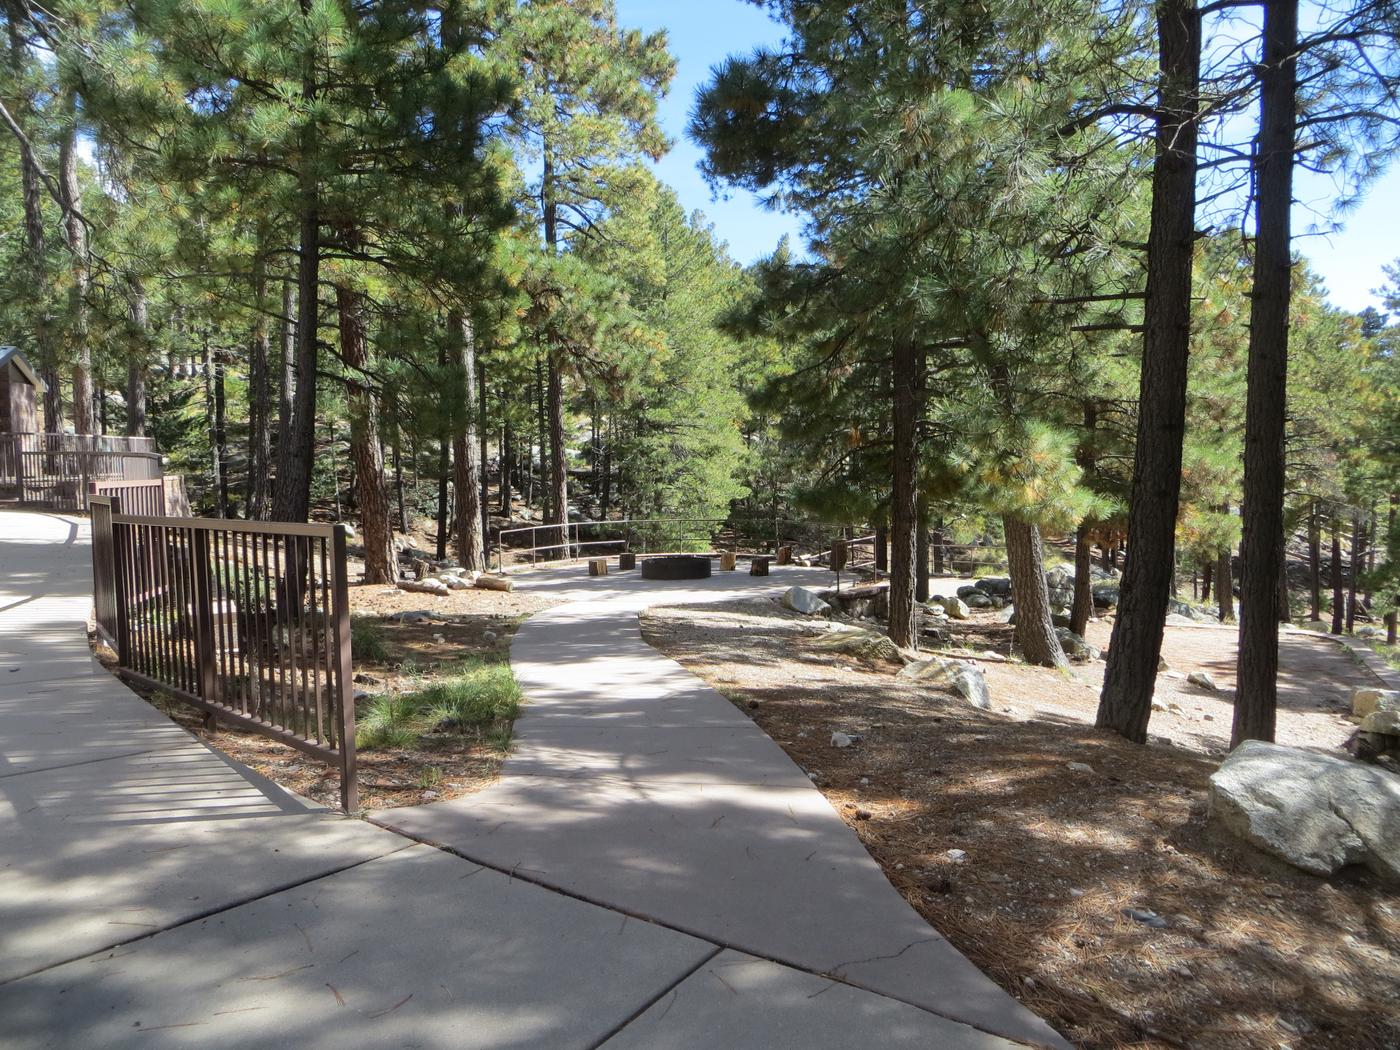 Sidewalk ramp from the parking lot to the large, wooded Group Site #01, Whitetail Campground.